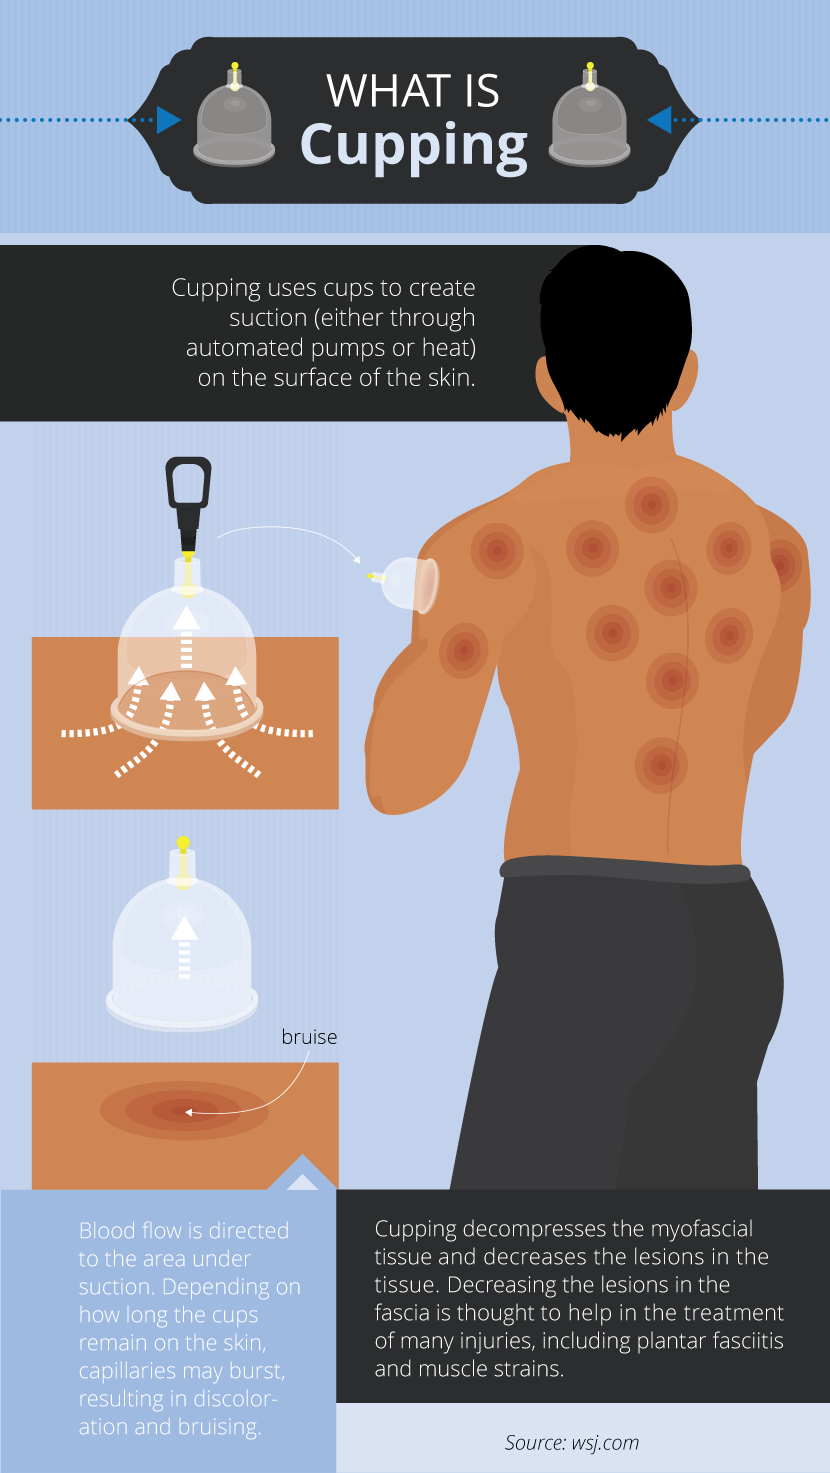 What is Cupping - Alternative Therapies: Benefits and Risks